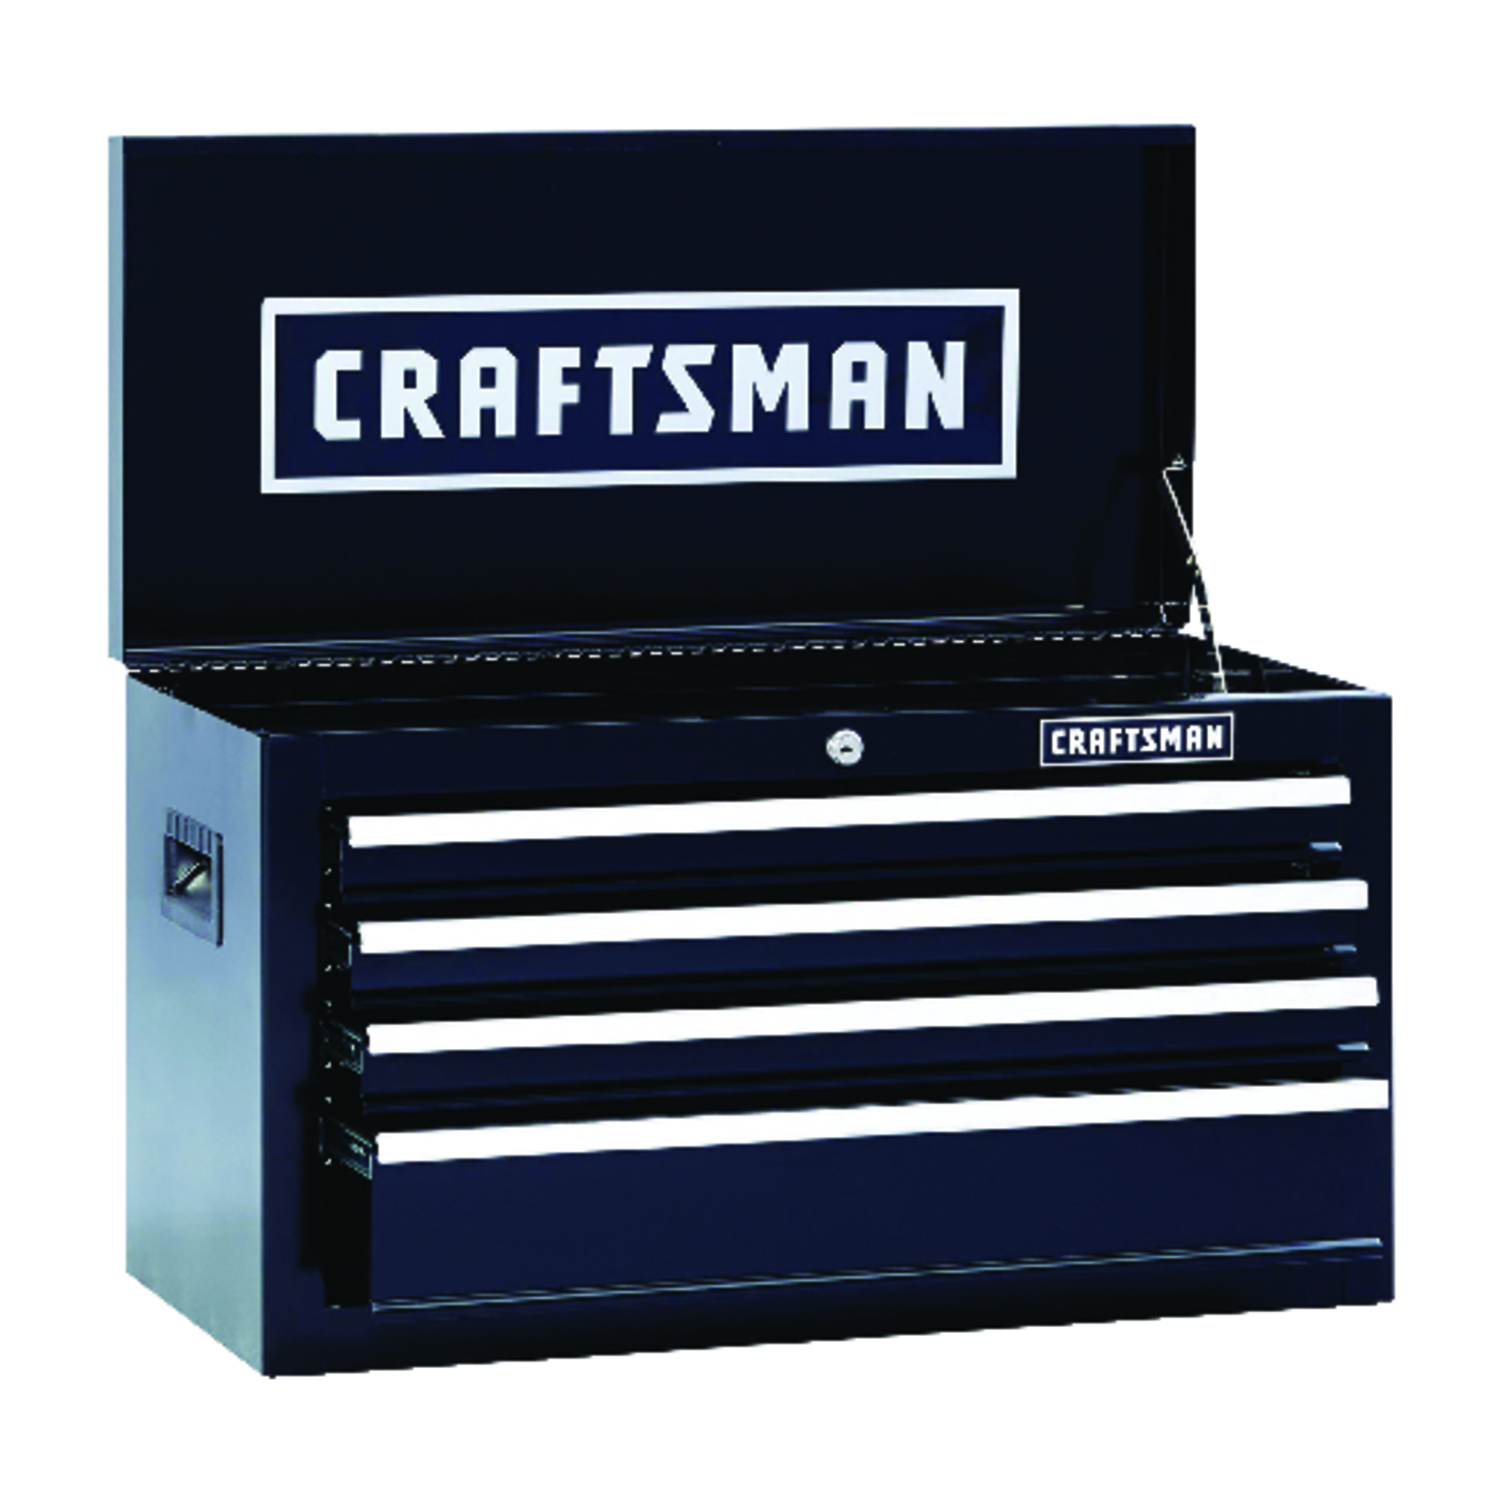 Craftsman  26 in. 4 drawer 12 in. D Top Tool Chest  Black  Steel